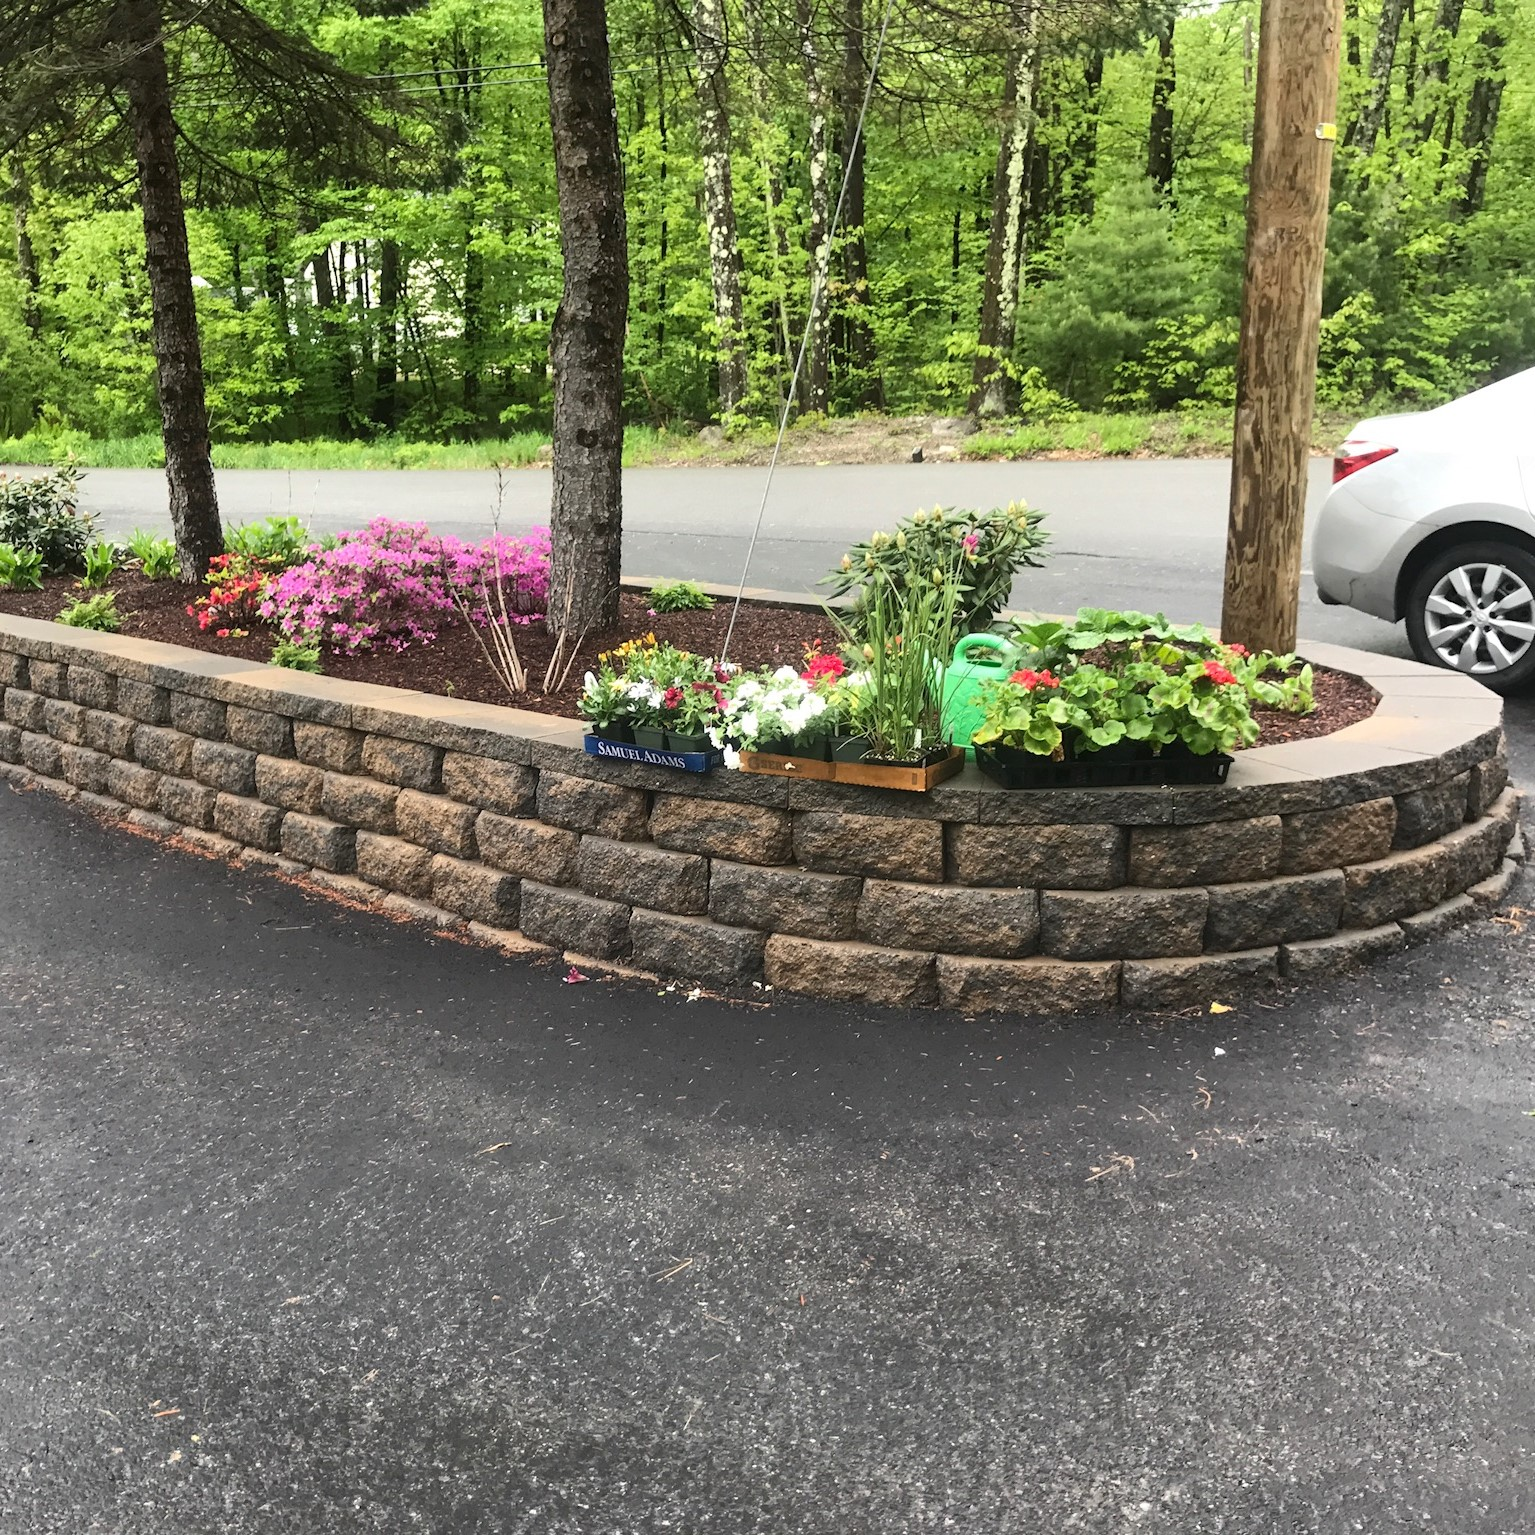 Garden Wall Masonry Service in New Ipswich New Hampshire